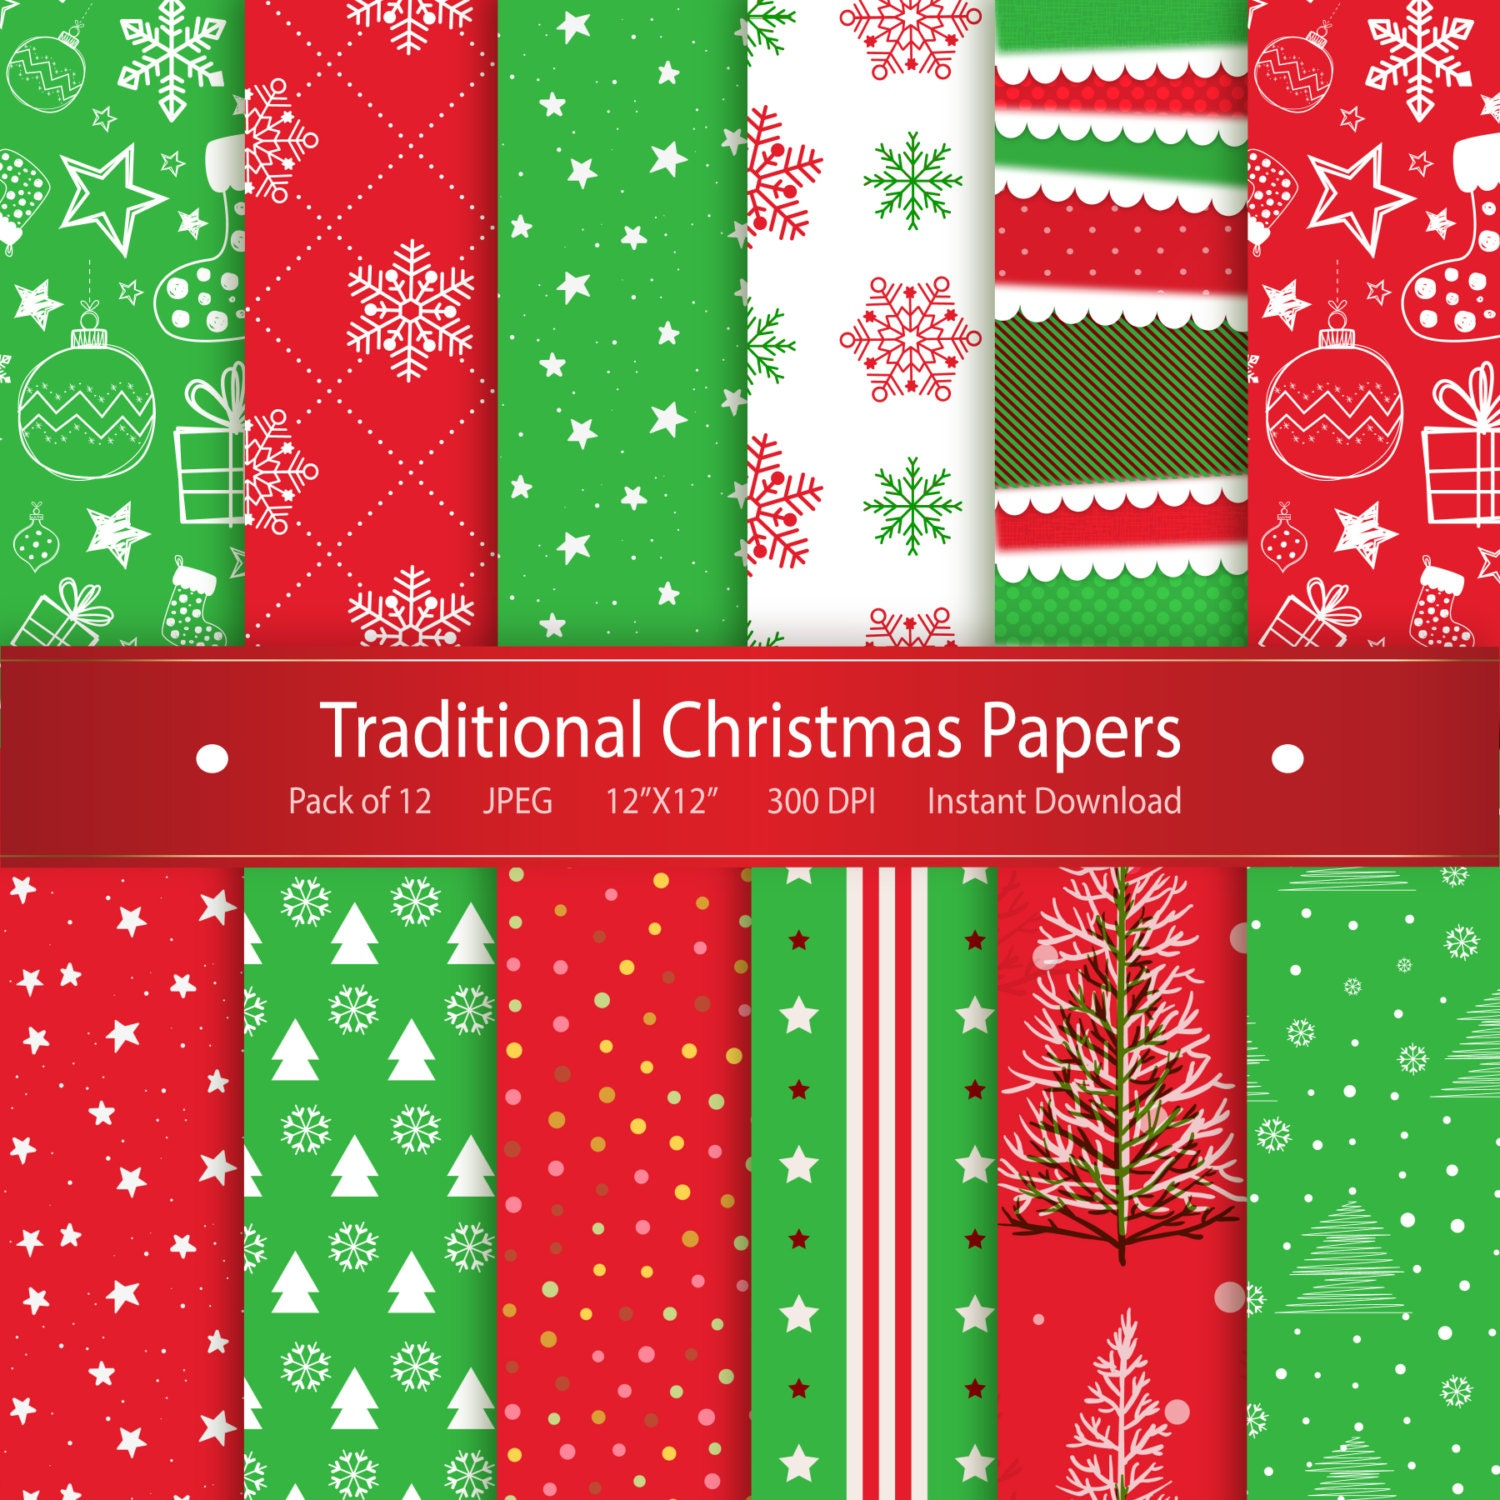 Scrapbook ideas video download - Christmas Digital Paper Traditional Christmas Papers Printable Design Instant Download Scrapbooking Collection Stockings Snowflakes Stars